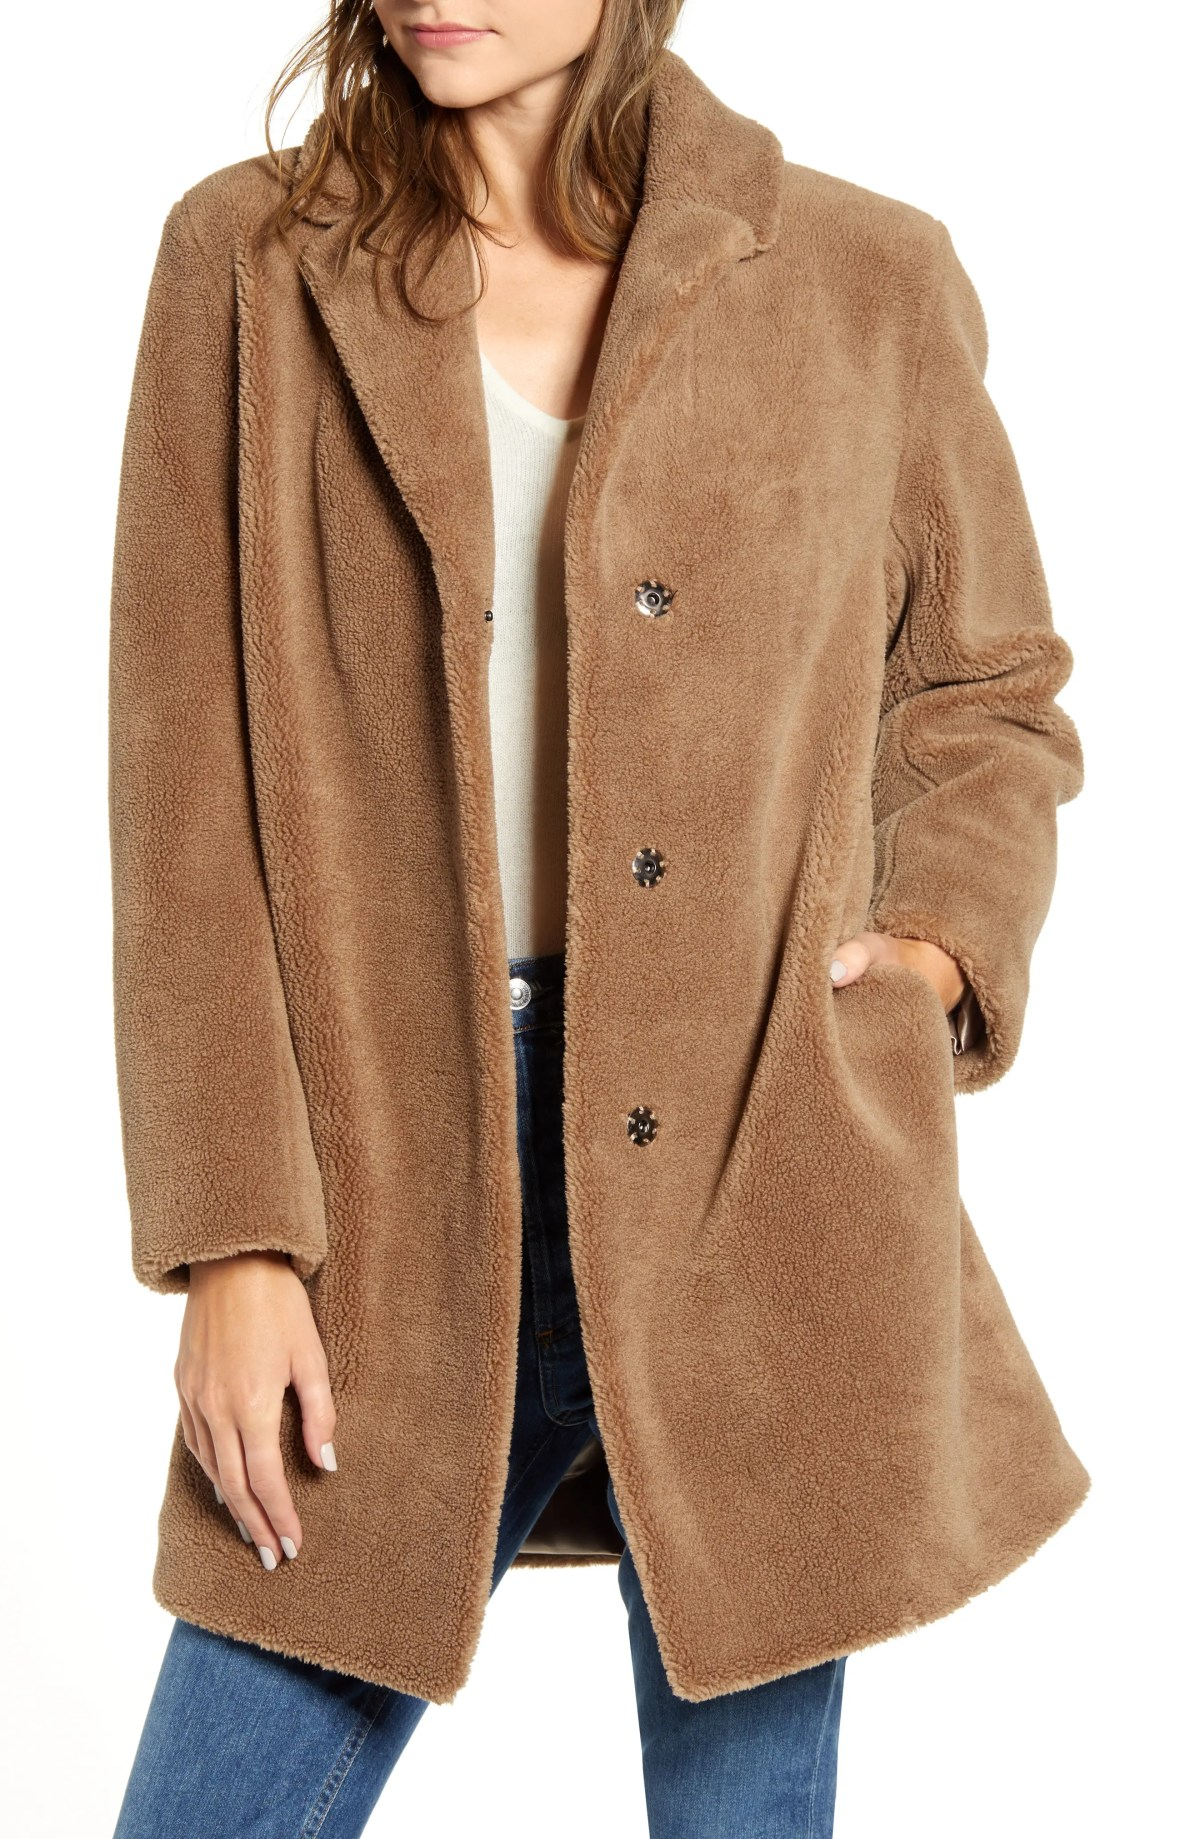 VELVET BY GRAHAM & SPENCER Velvet by Grahan & Spencer Lux Faux Shearling Coat, Main, color, TAN